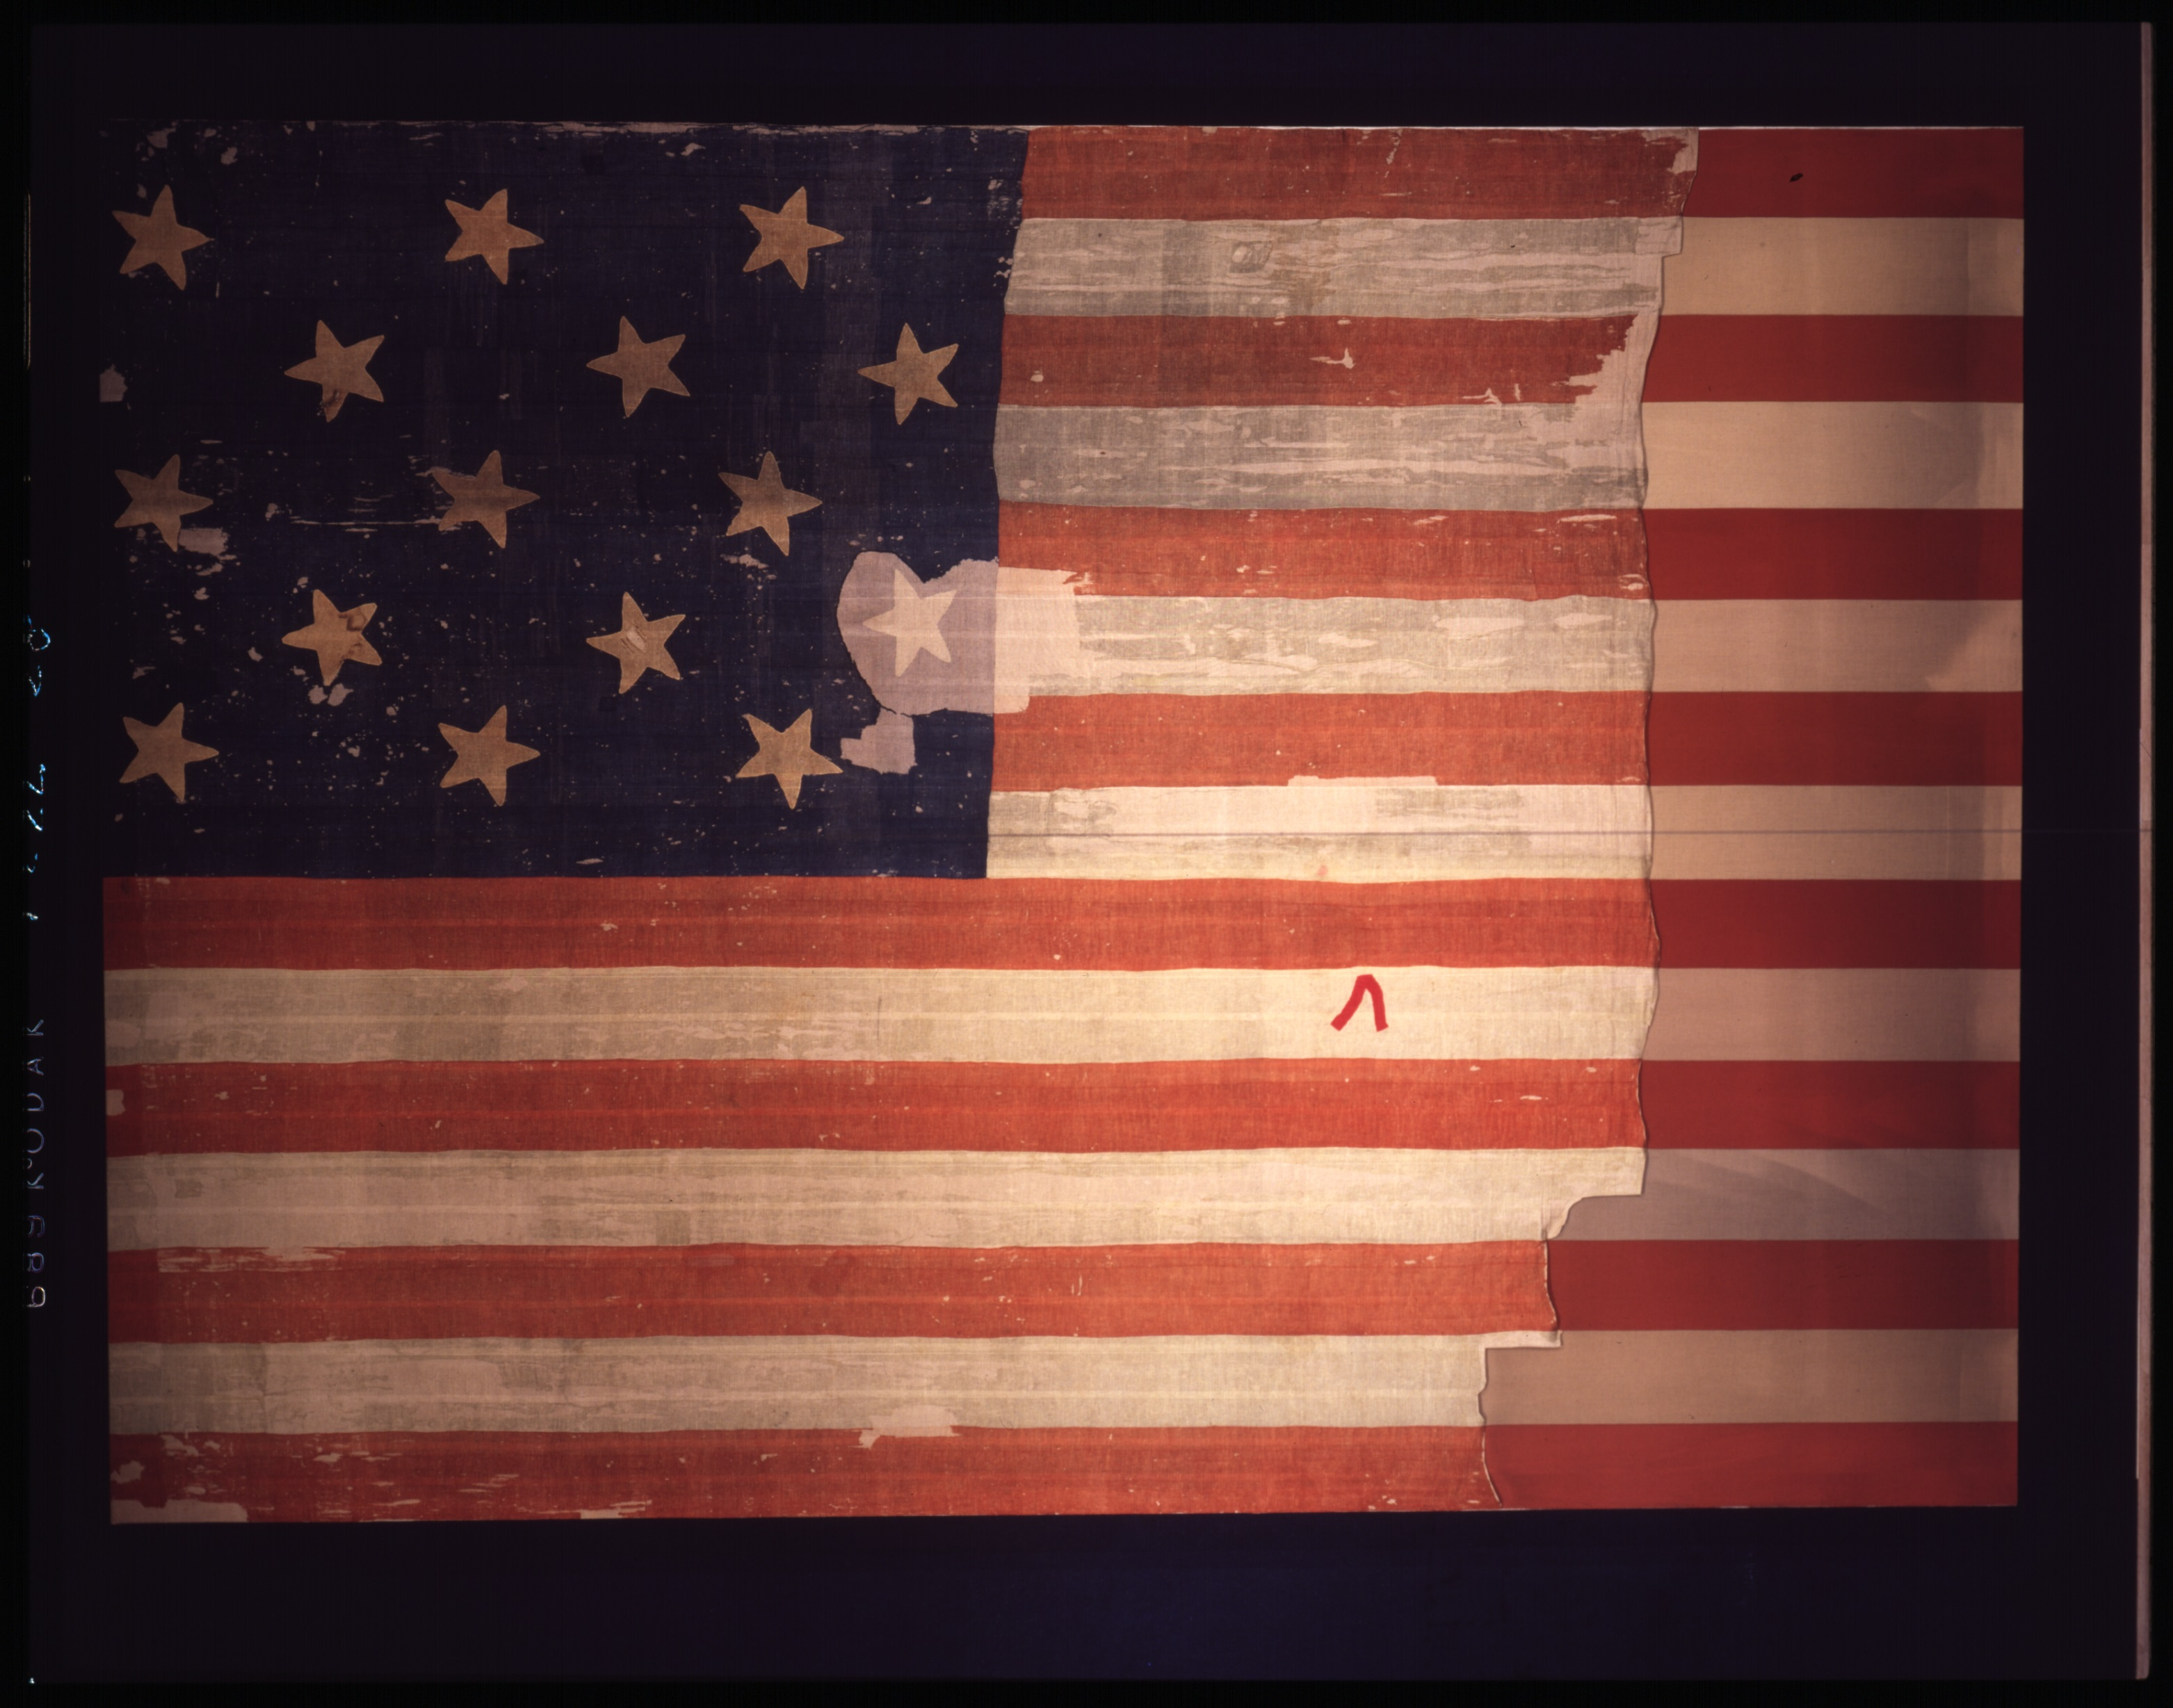 Star-Spangled Banner, by Dane Penland